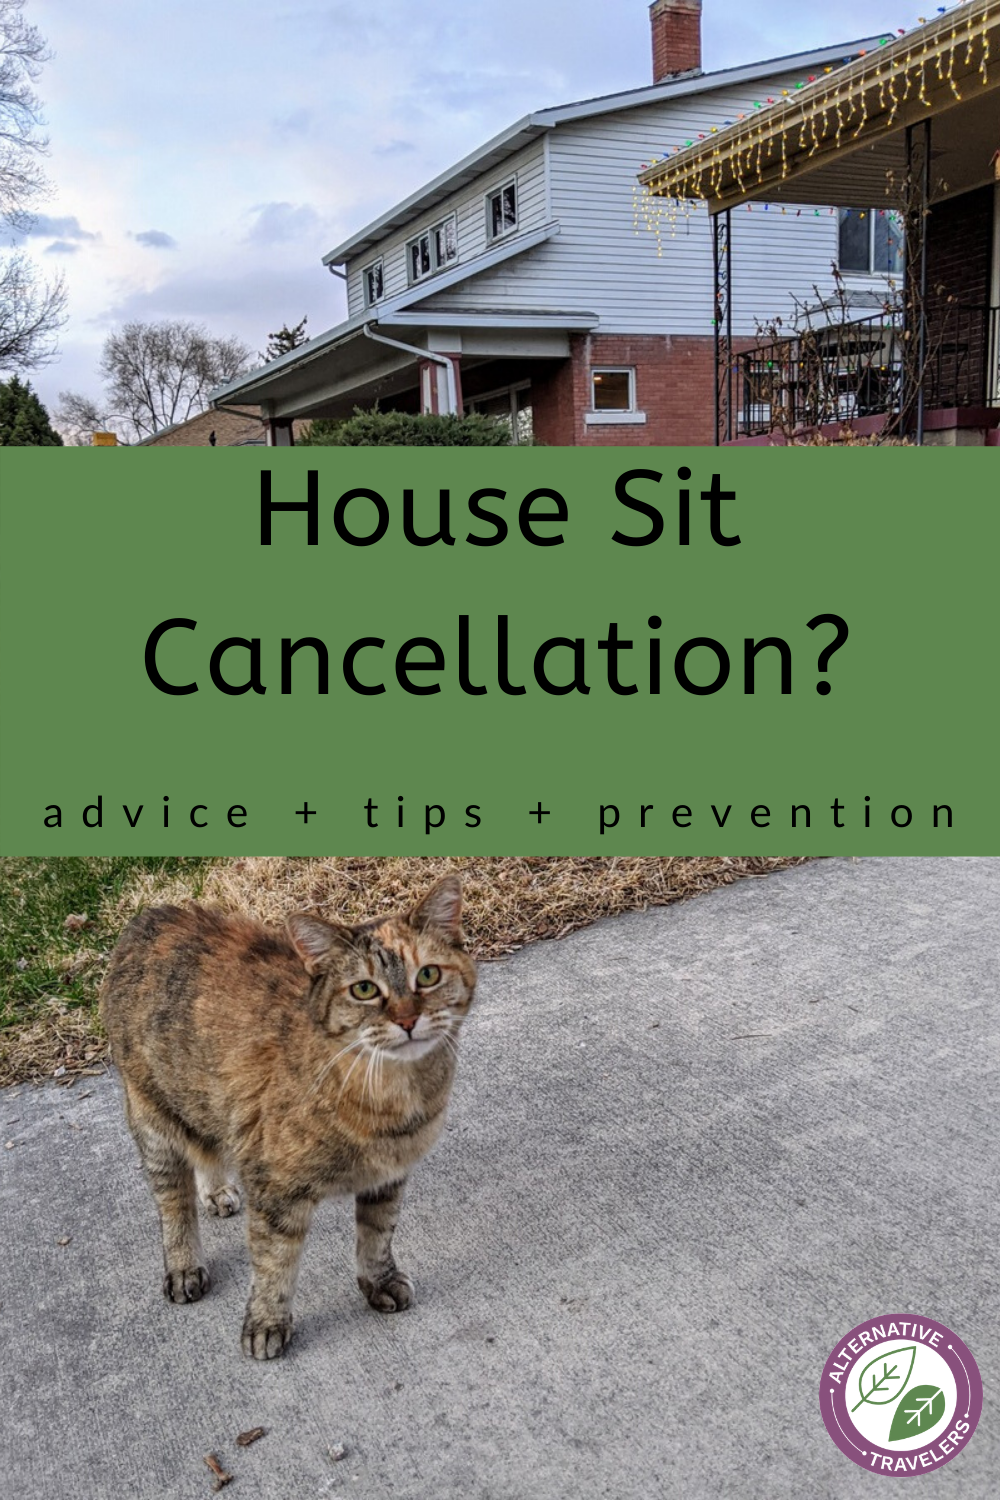 House Sit Cancellation? House sitting tips, advice, and what to do if you find yourself in this situation. #Housesitting